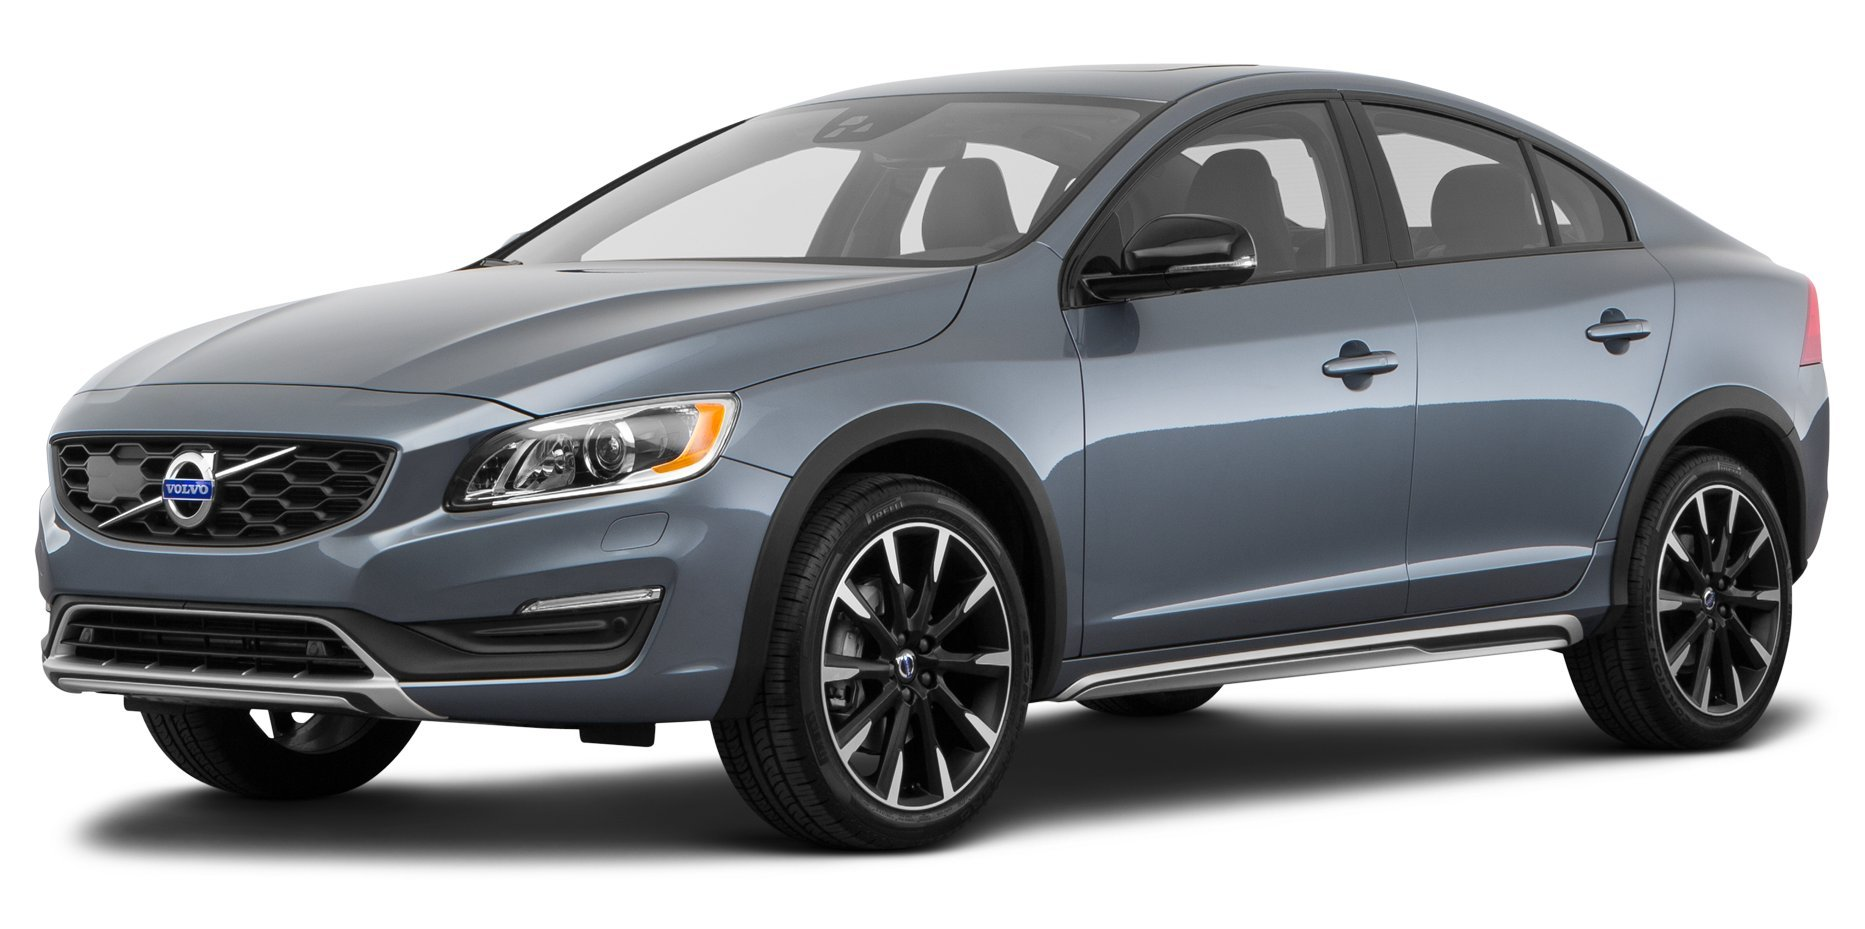 2017 volvo s60 cross country reviews images and specs vehicles. Black Bedroom Furniture Sets. Home Design Ideas